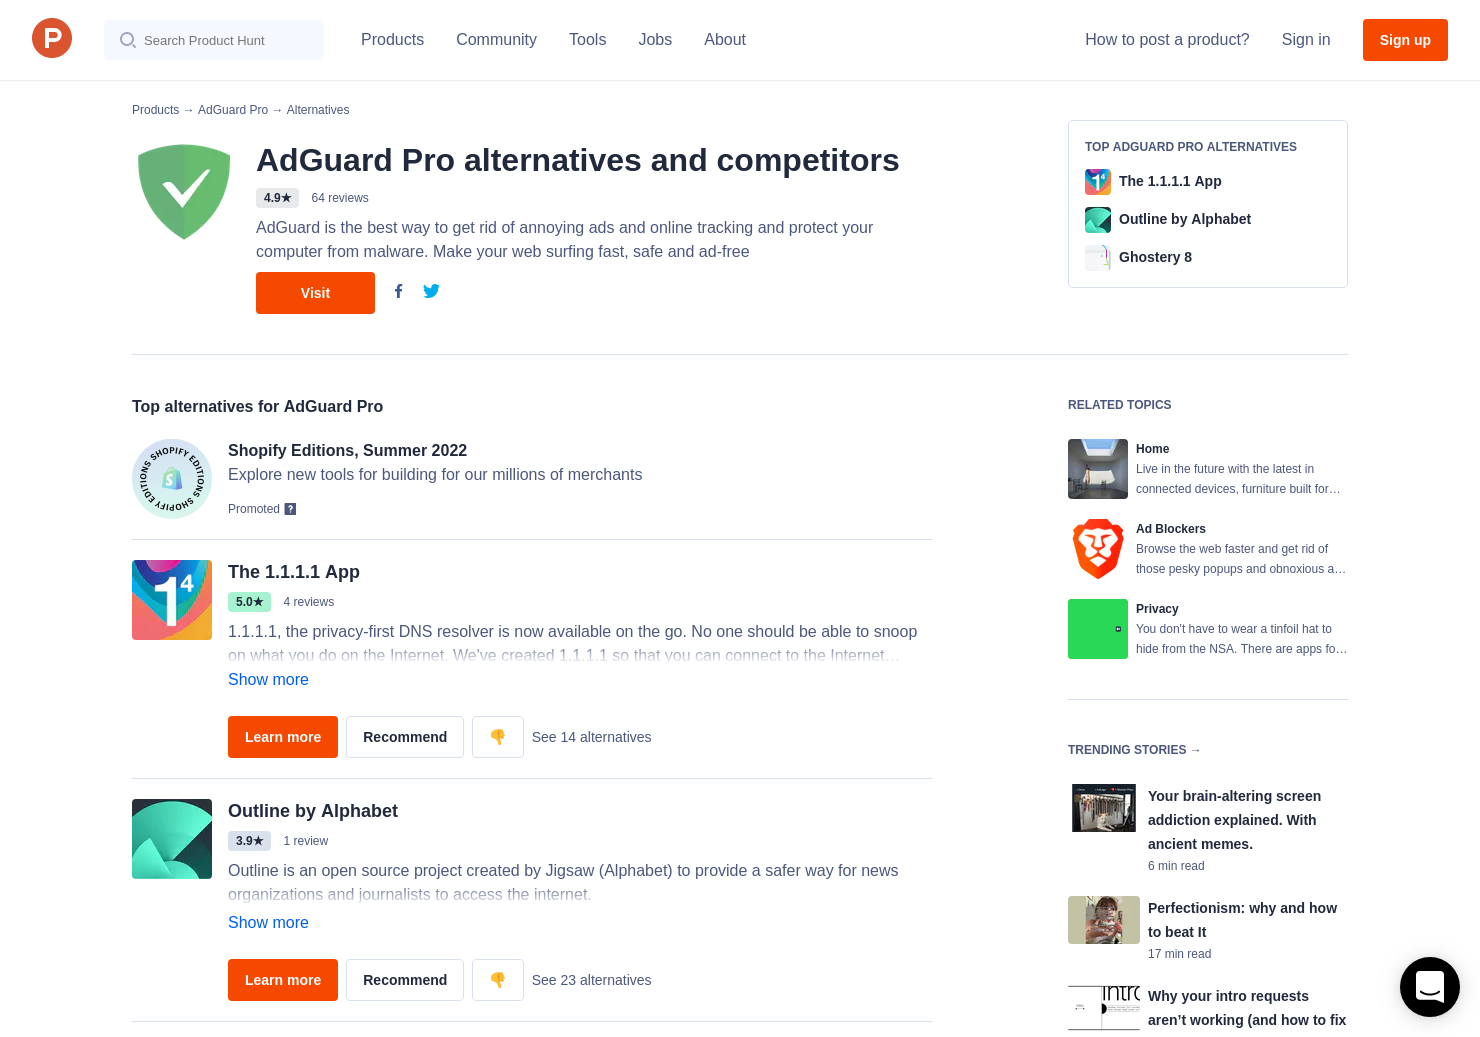 9 Alternatives to AdGuard 3 0 for Android for Android